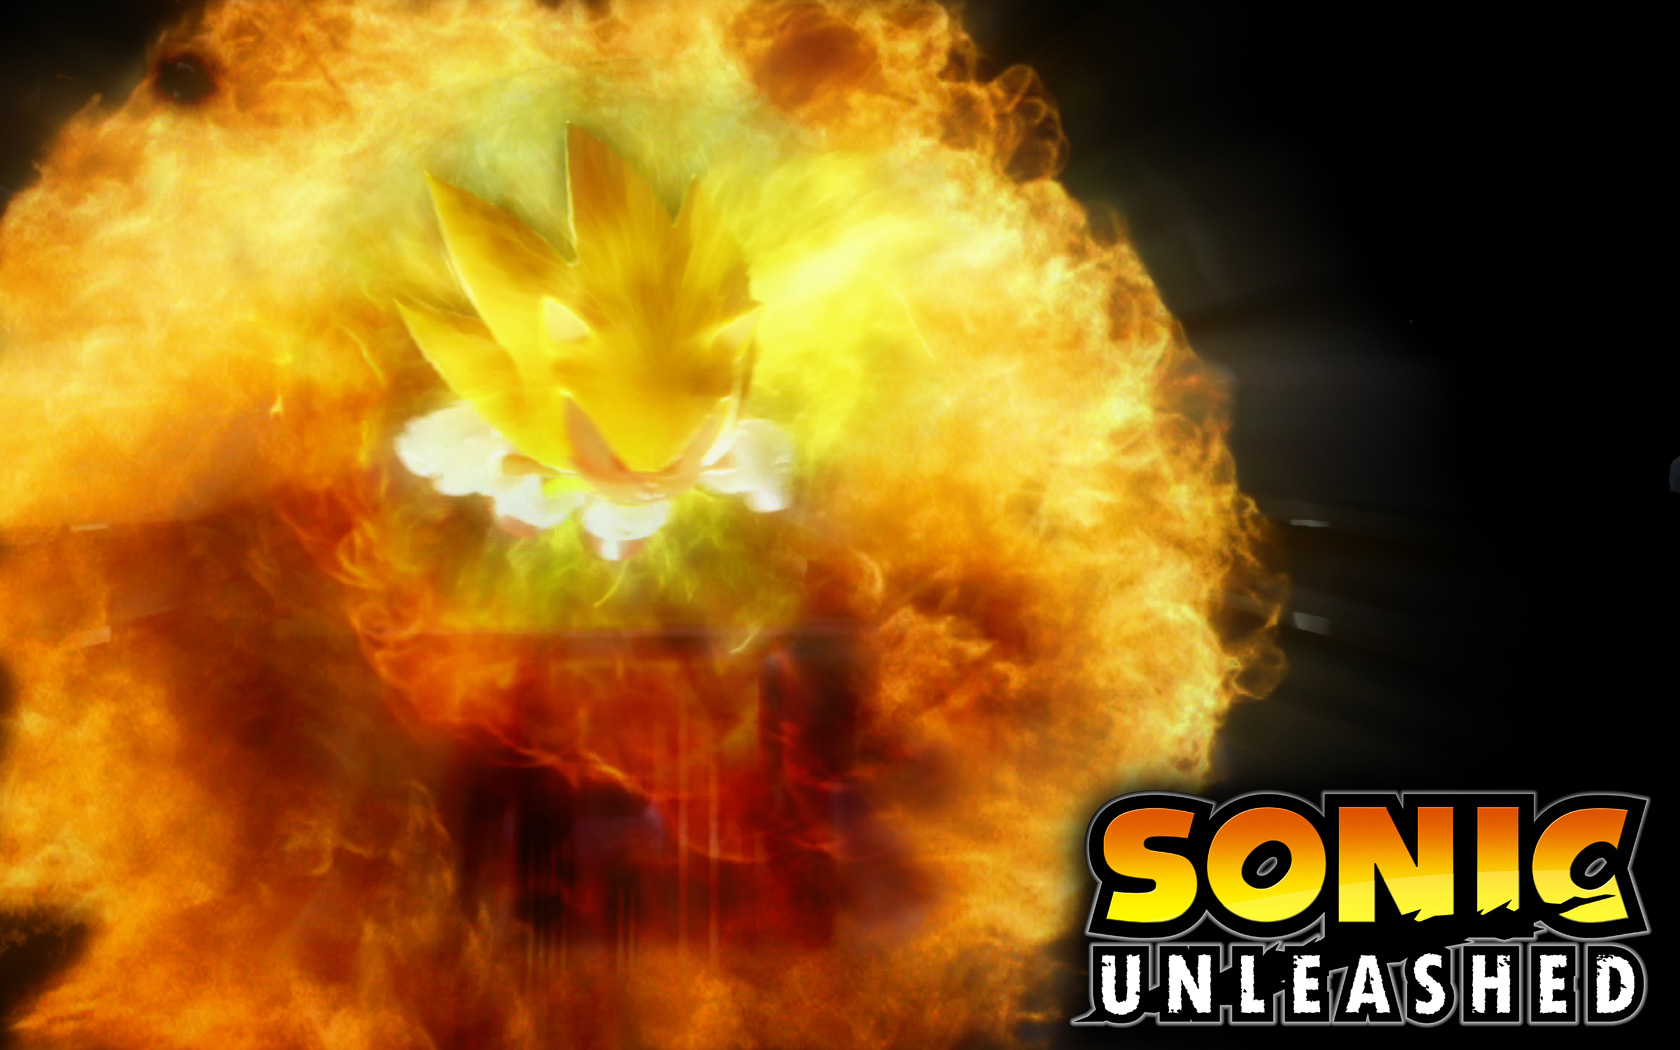 Mesa Oval Team Sonic Speed: Sonic Unleashed Wallpapers